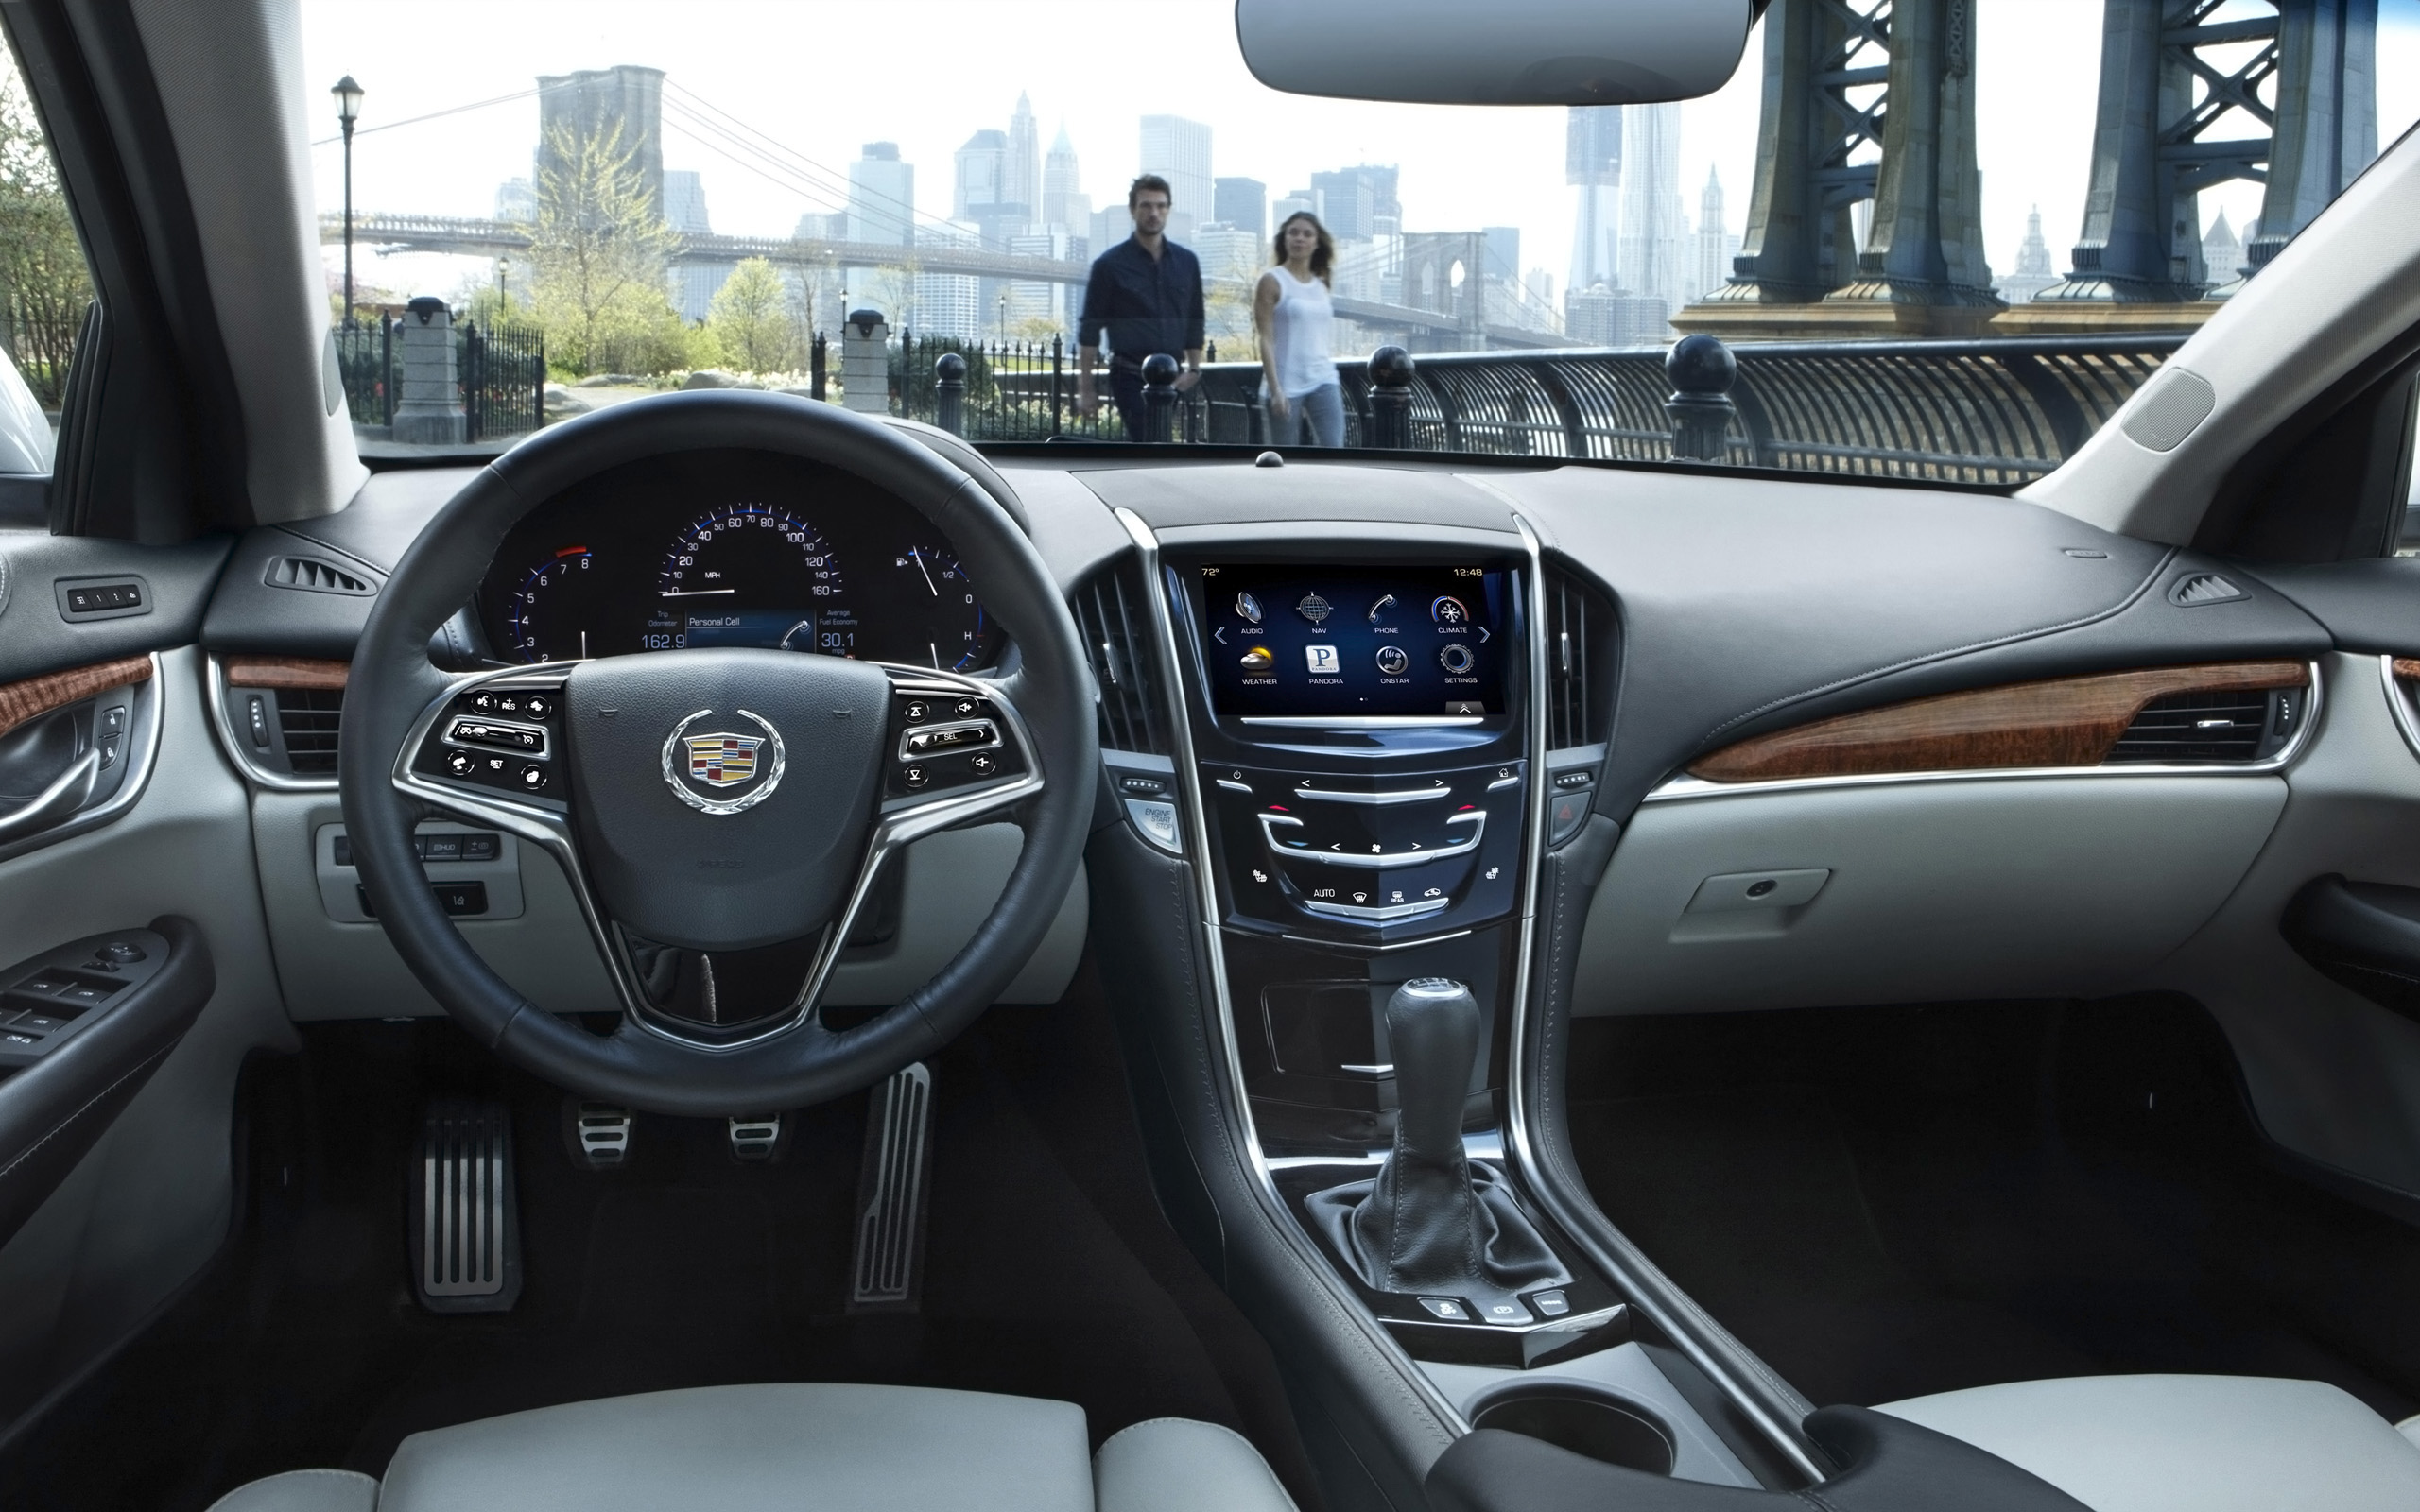 2014 cadillac ats luxury interior g wallpaper 2560x1600 152282 wallpaperup. Black Bedroom Furniture Sets. Home Design Ideas